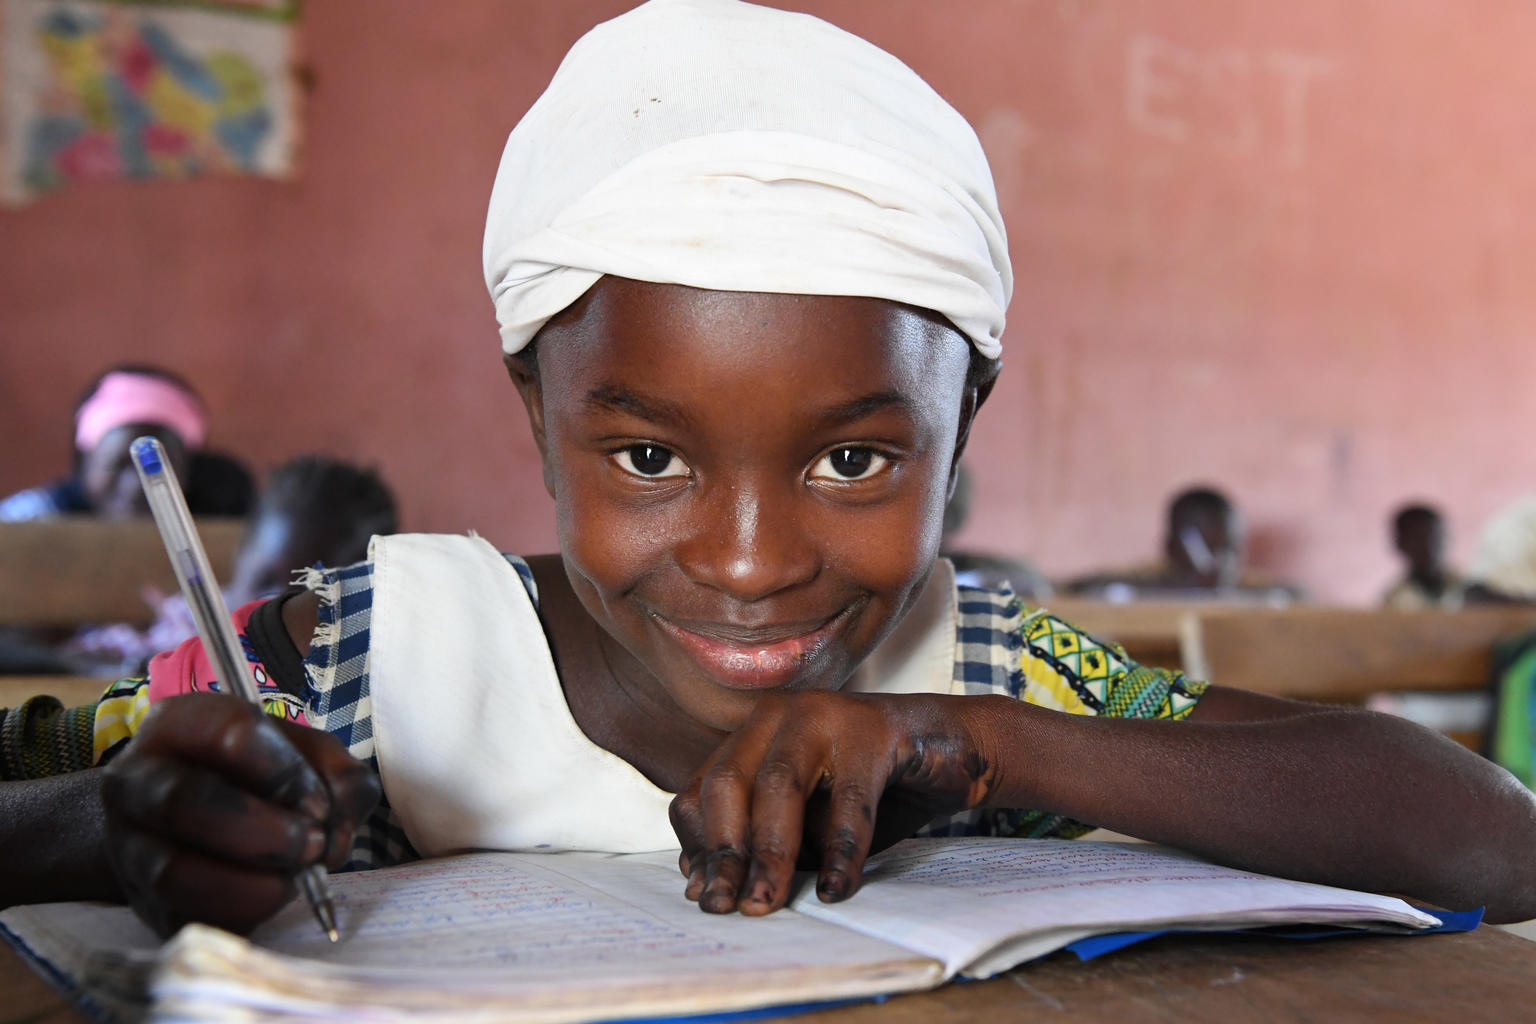 A smiling girl writes with a pen in a notebook.